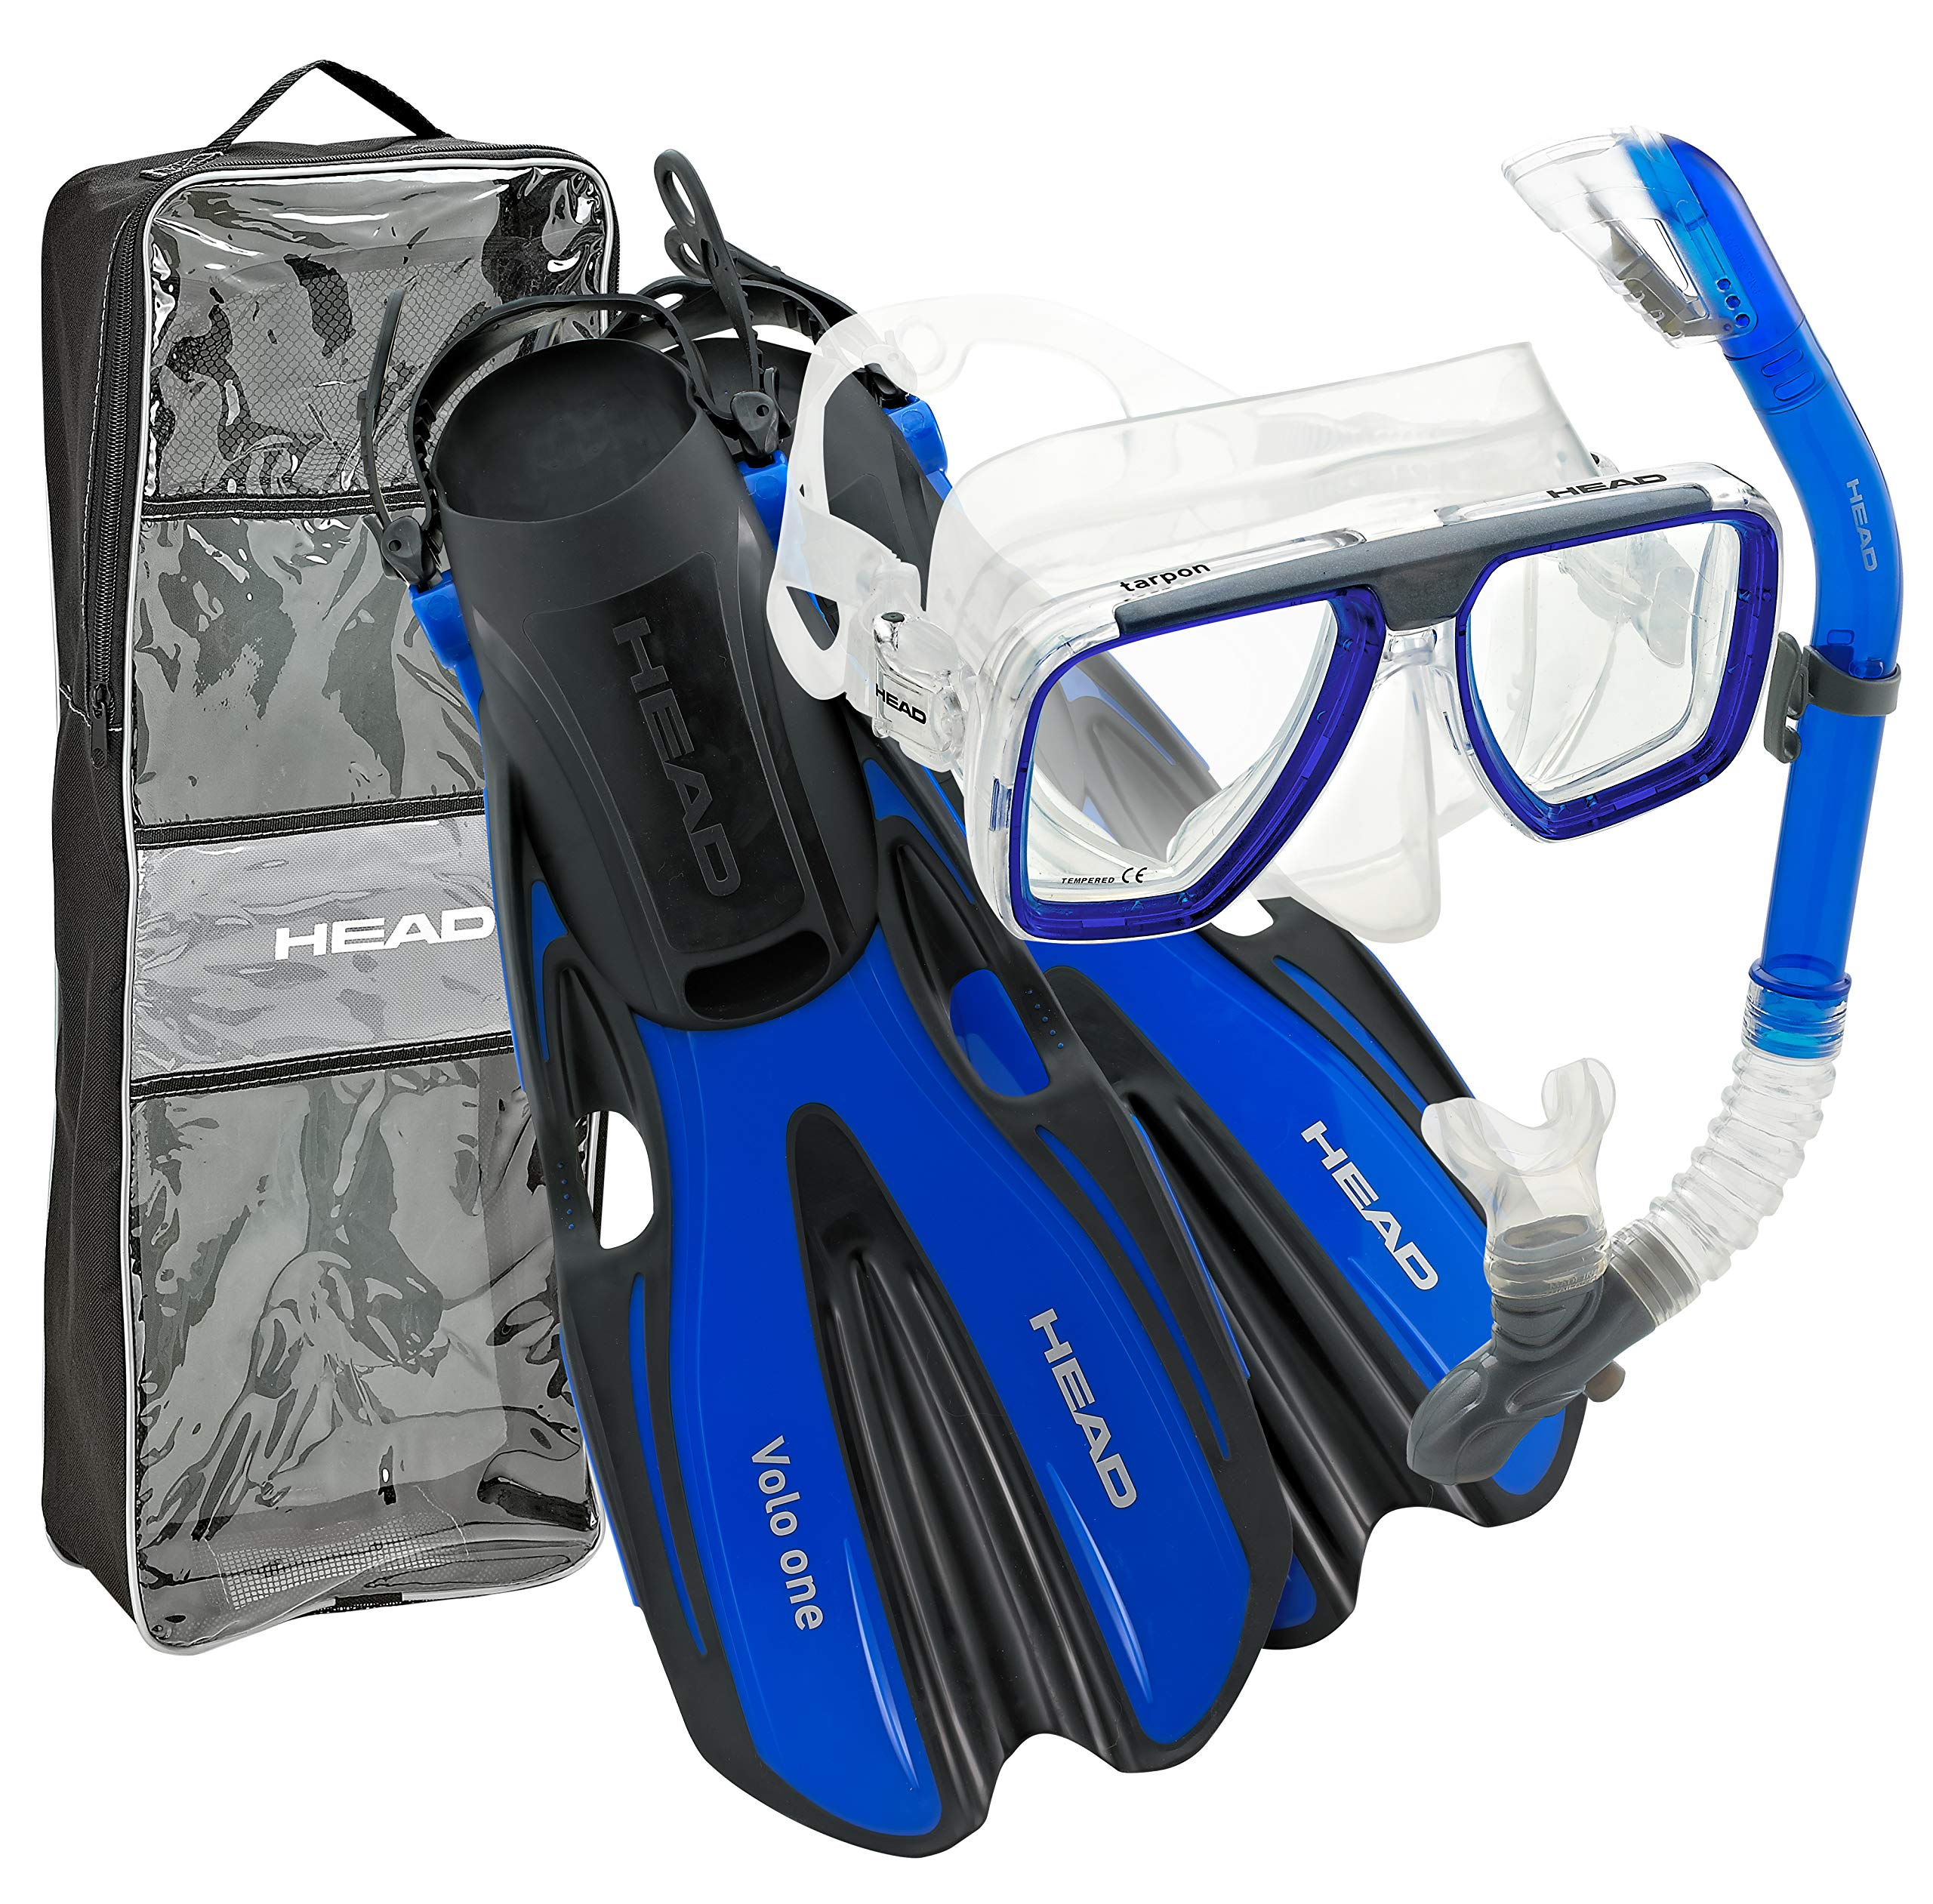 HEAD By Mares Tarpon Travel Friendly Premium Mask Fin Snorkel Set, Blue, Small, (4-6) by HEAD